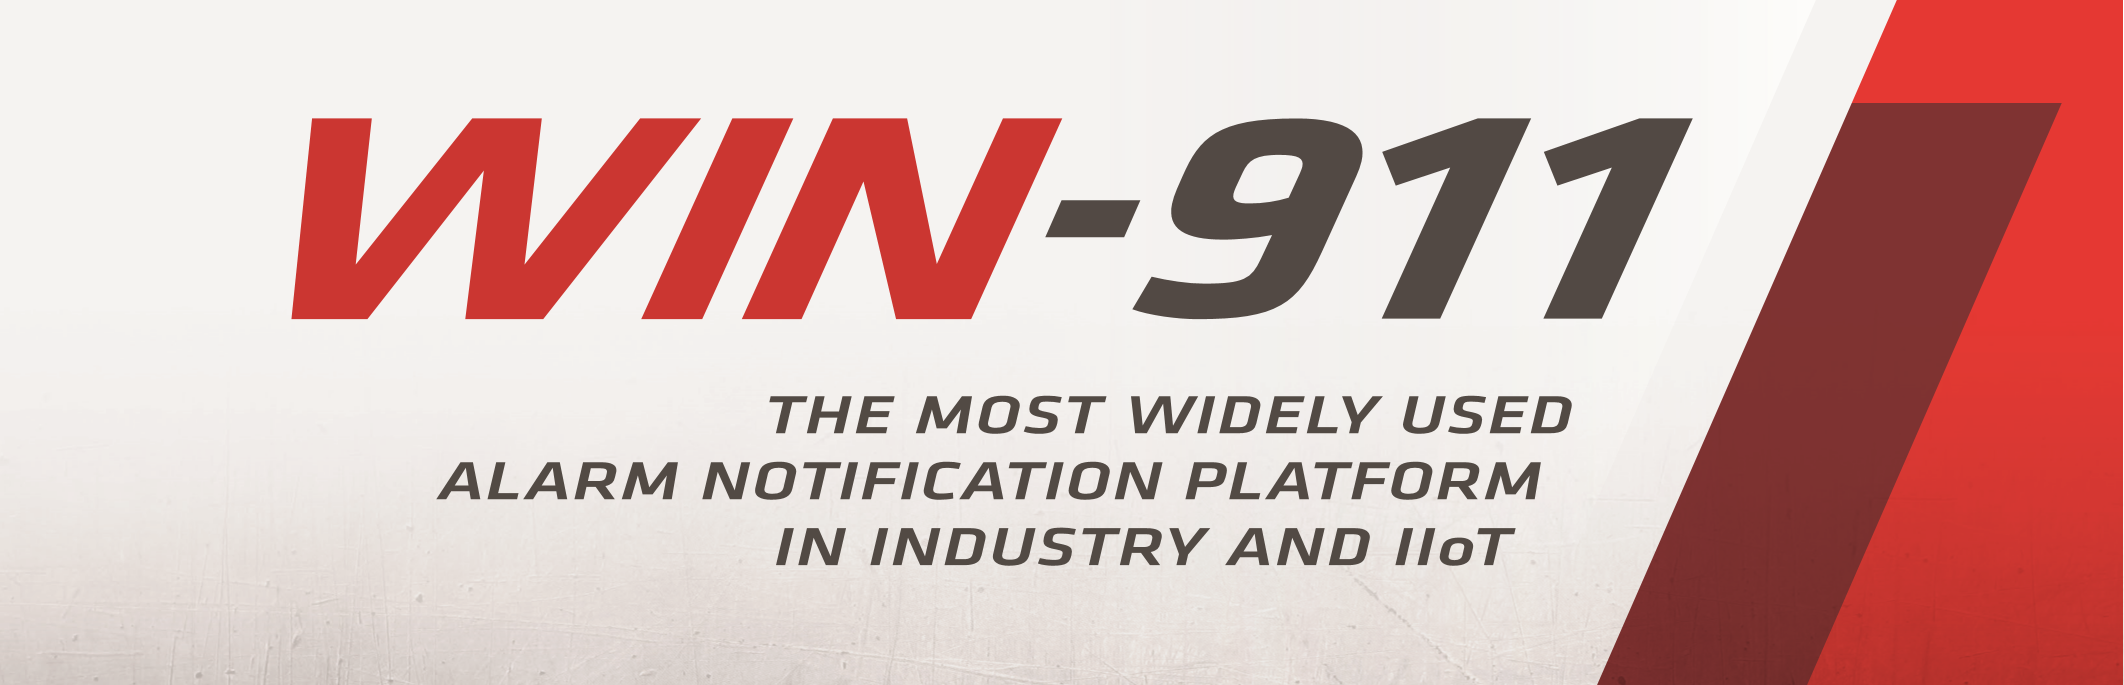 Products4Automation | Win-911